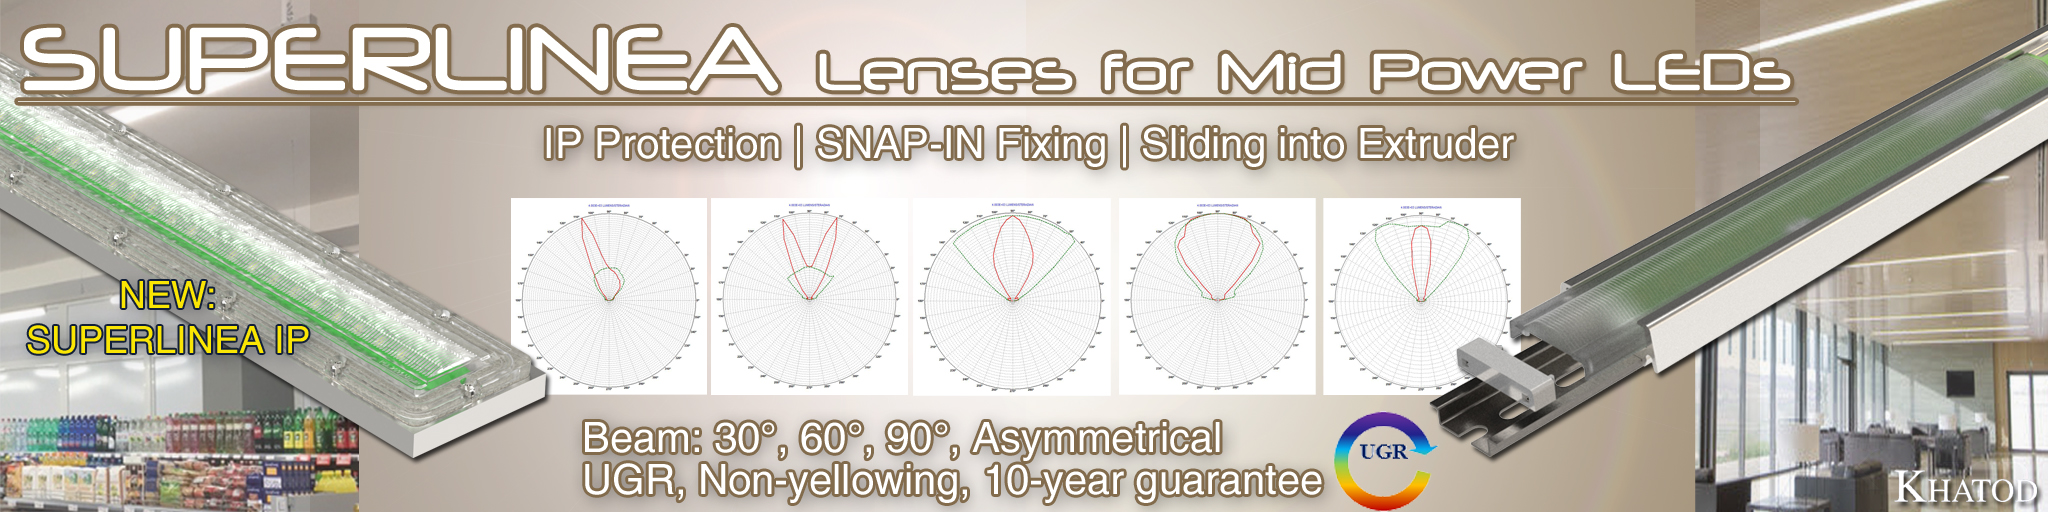 SUPERLINEA Lenses for Mid Power LEDs